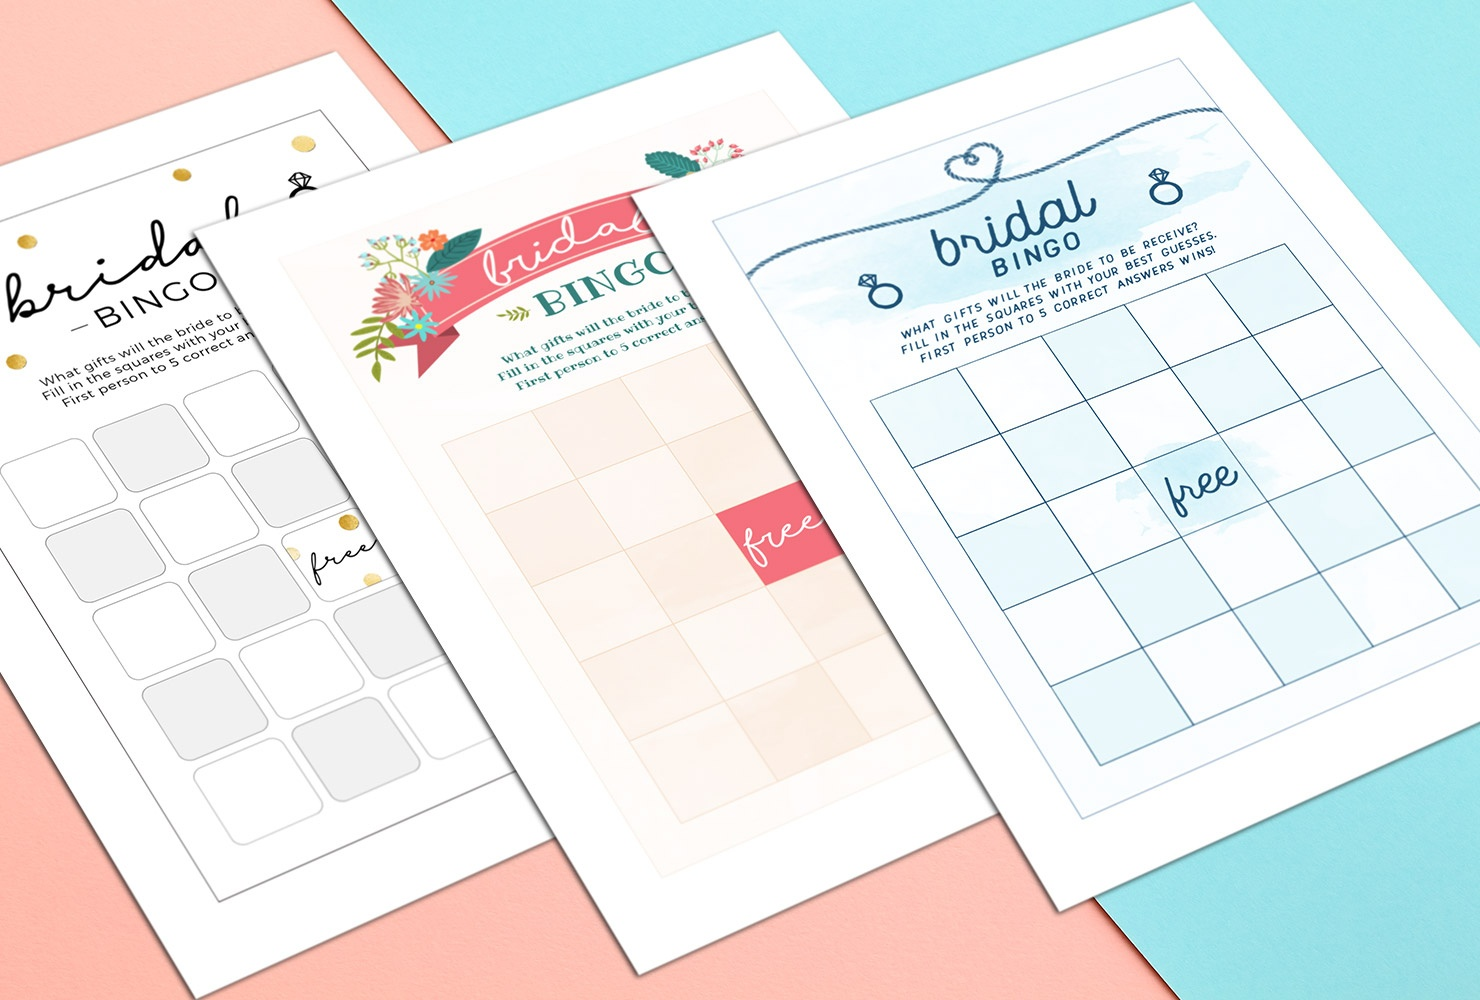 How To Play Bridal Shower Bingo (With Printables)   Shutterfly - Free Printable Bridal Shower Bingo